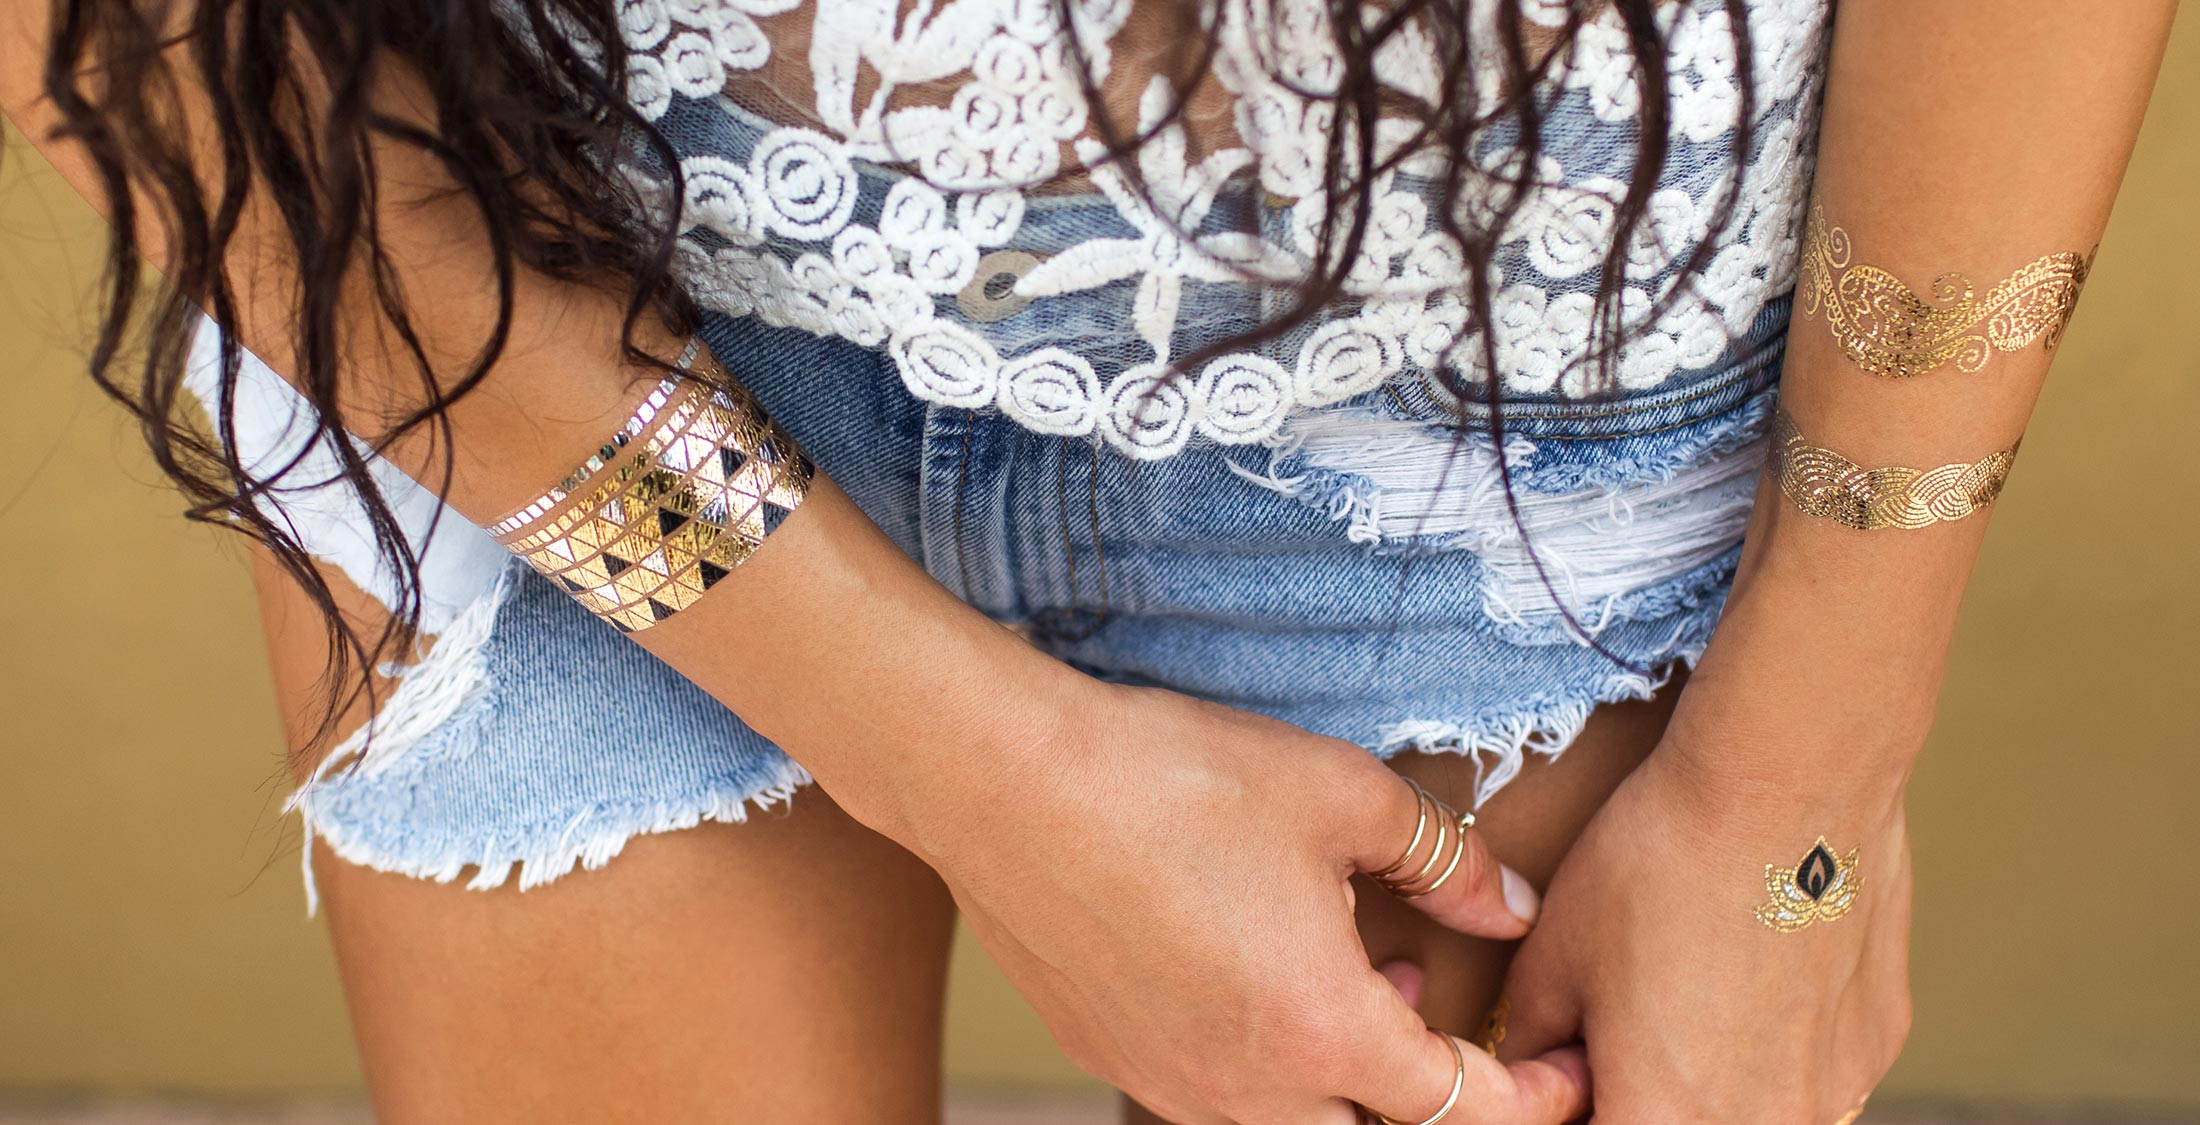 woman with flash jewelry on arms and hand